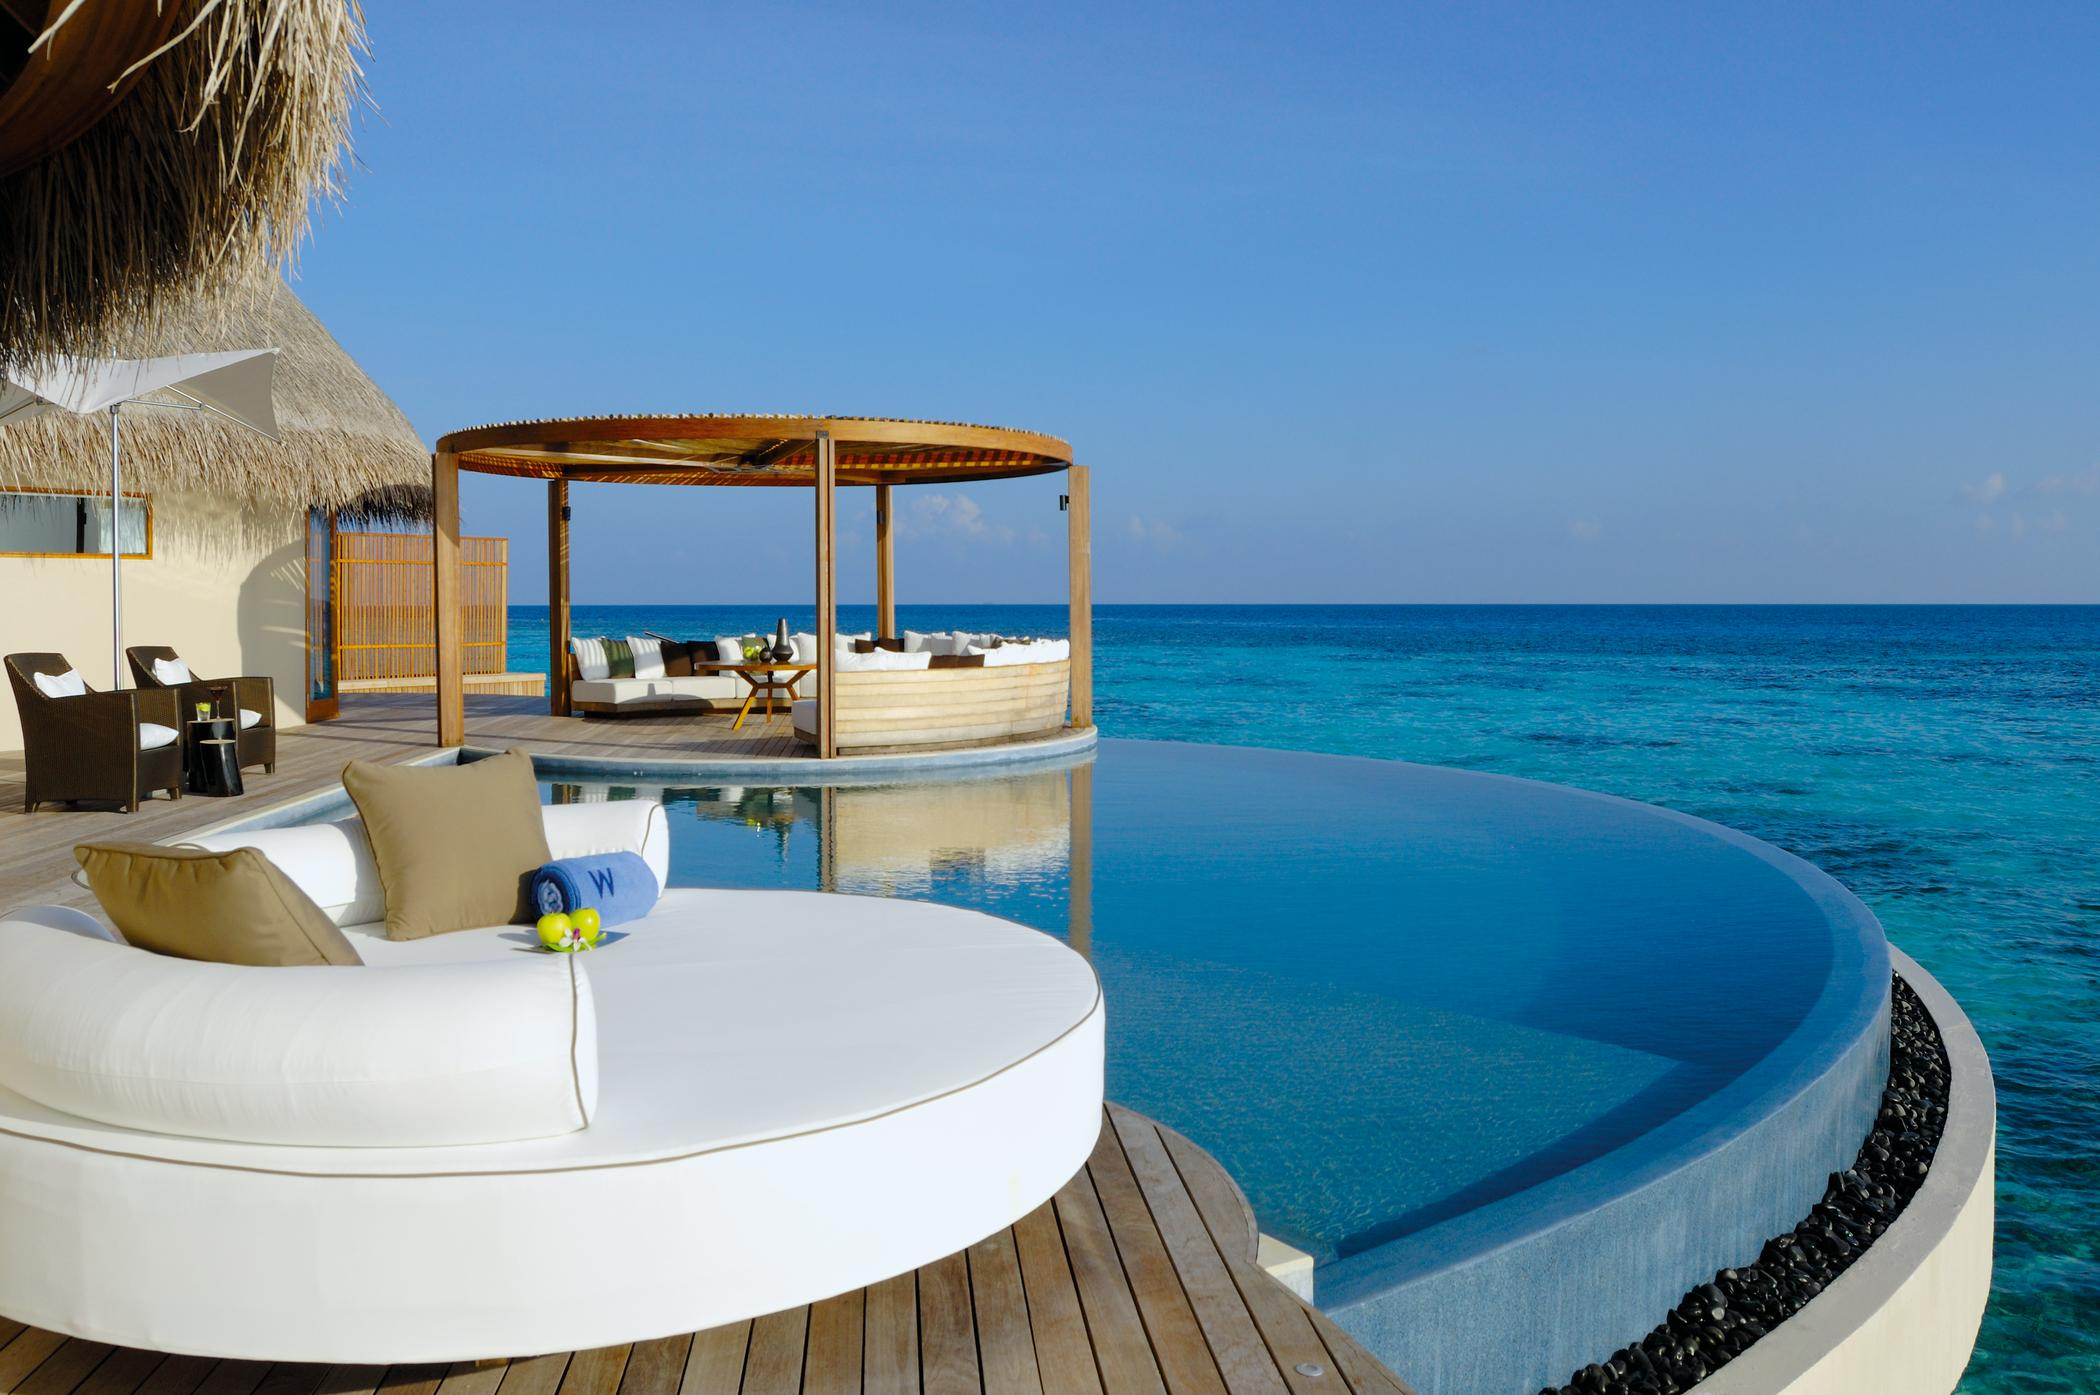 Hotel W Retreat & Spa Maldives - Infinity Pool